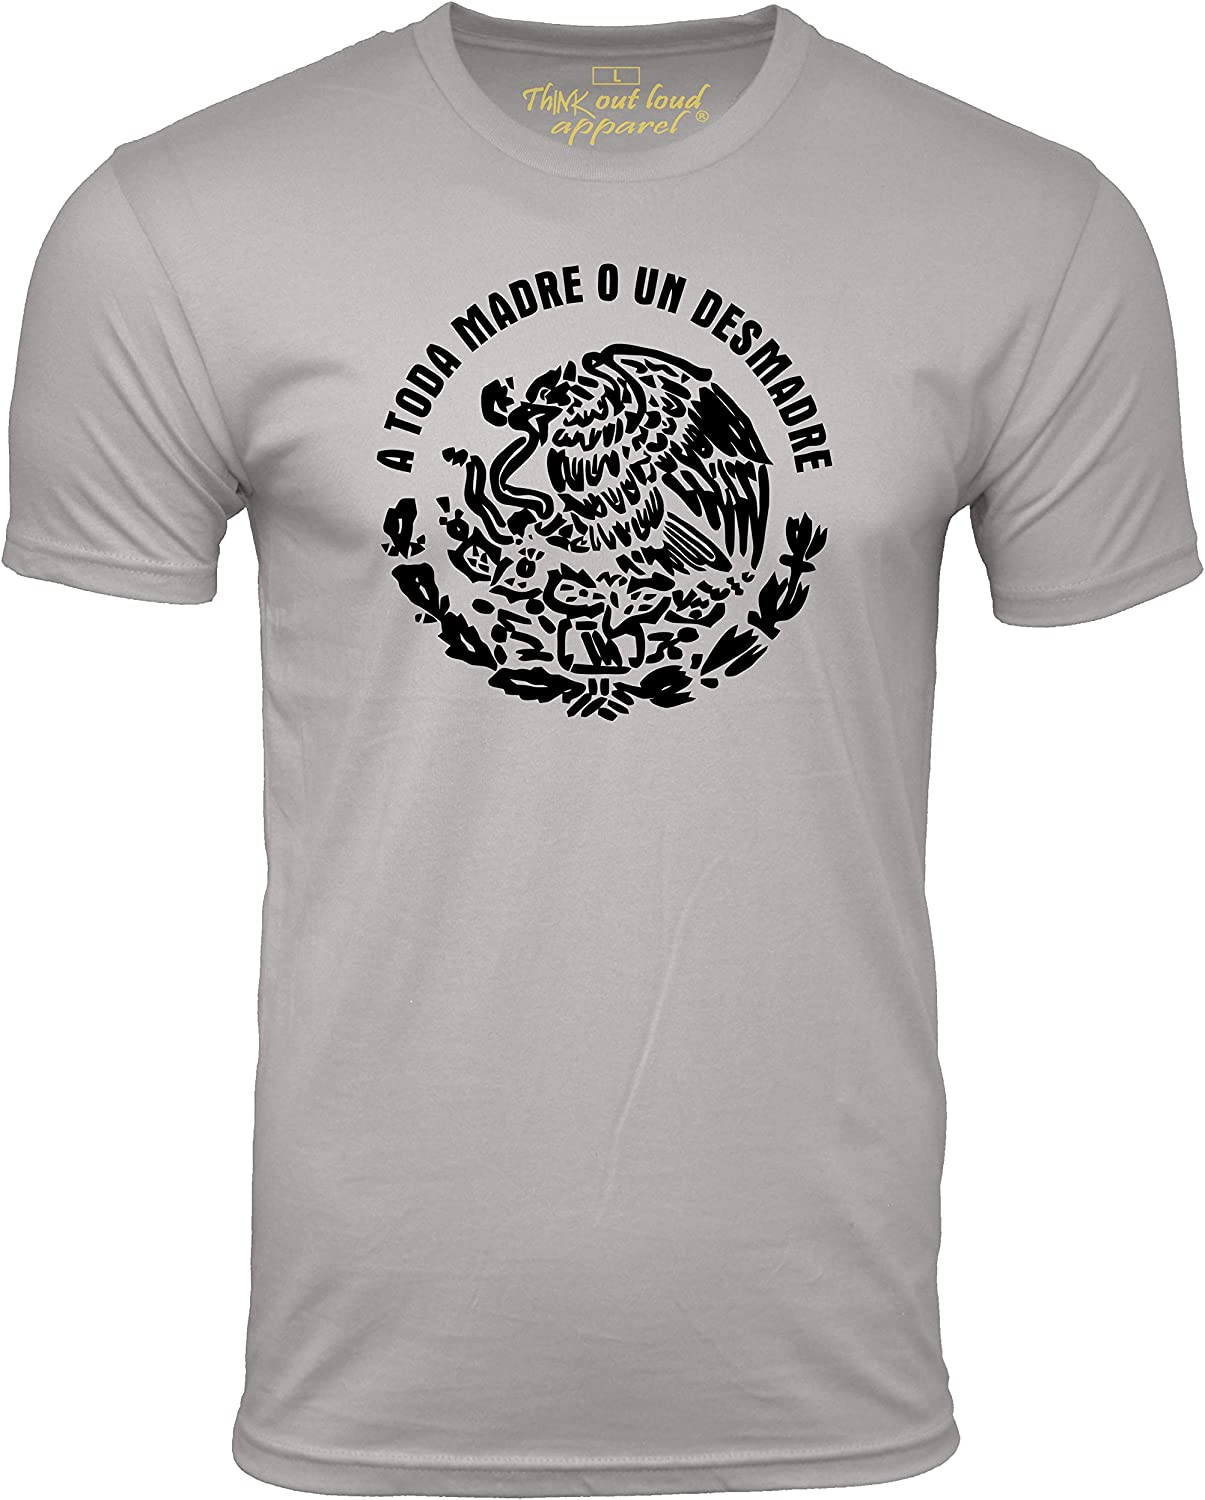 A Toda Madre o un Desmadre Funny Mexican T-Shirt Spanish Humor Tee